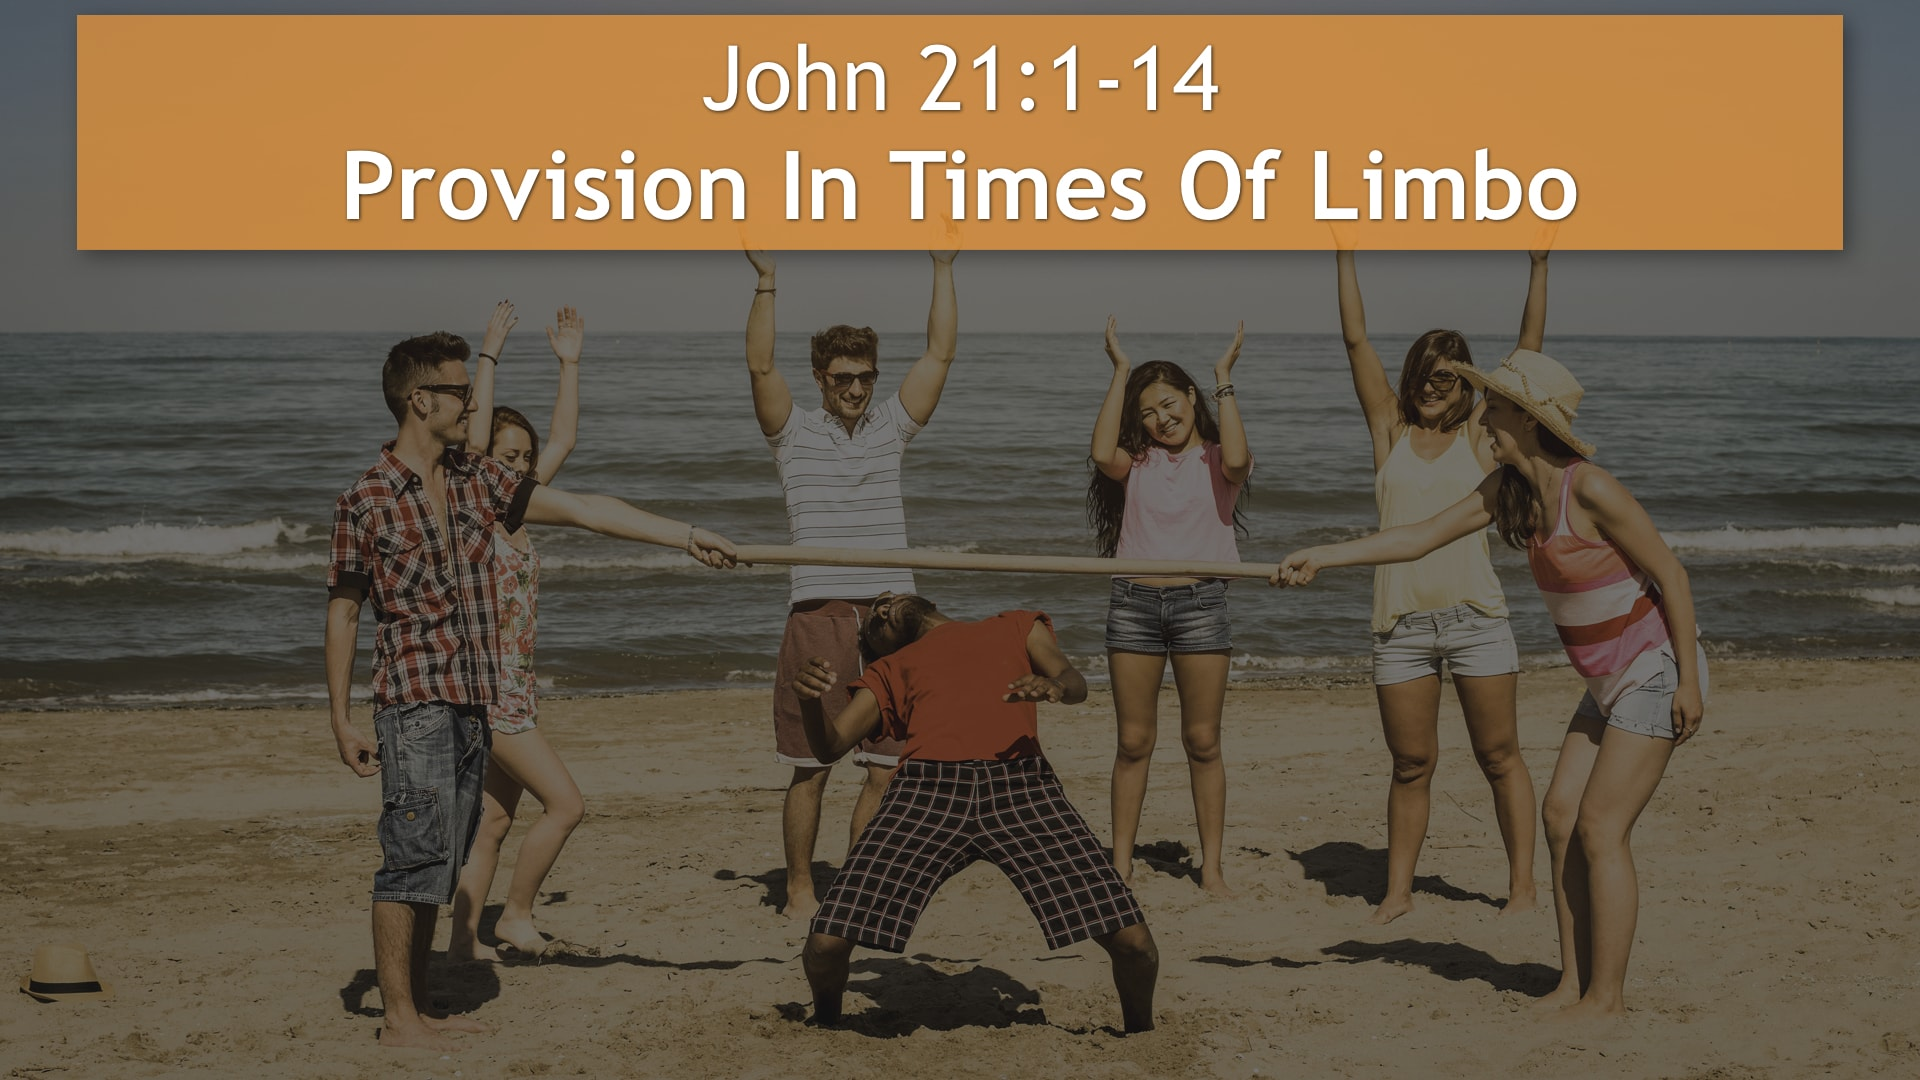 John 21:1-14, Provision In Times Of Limbo